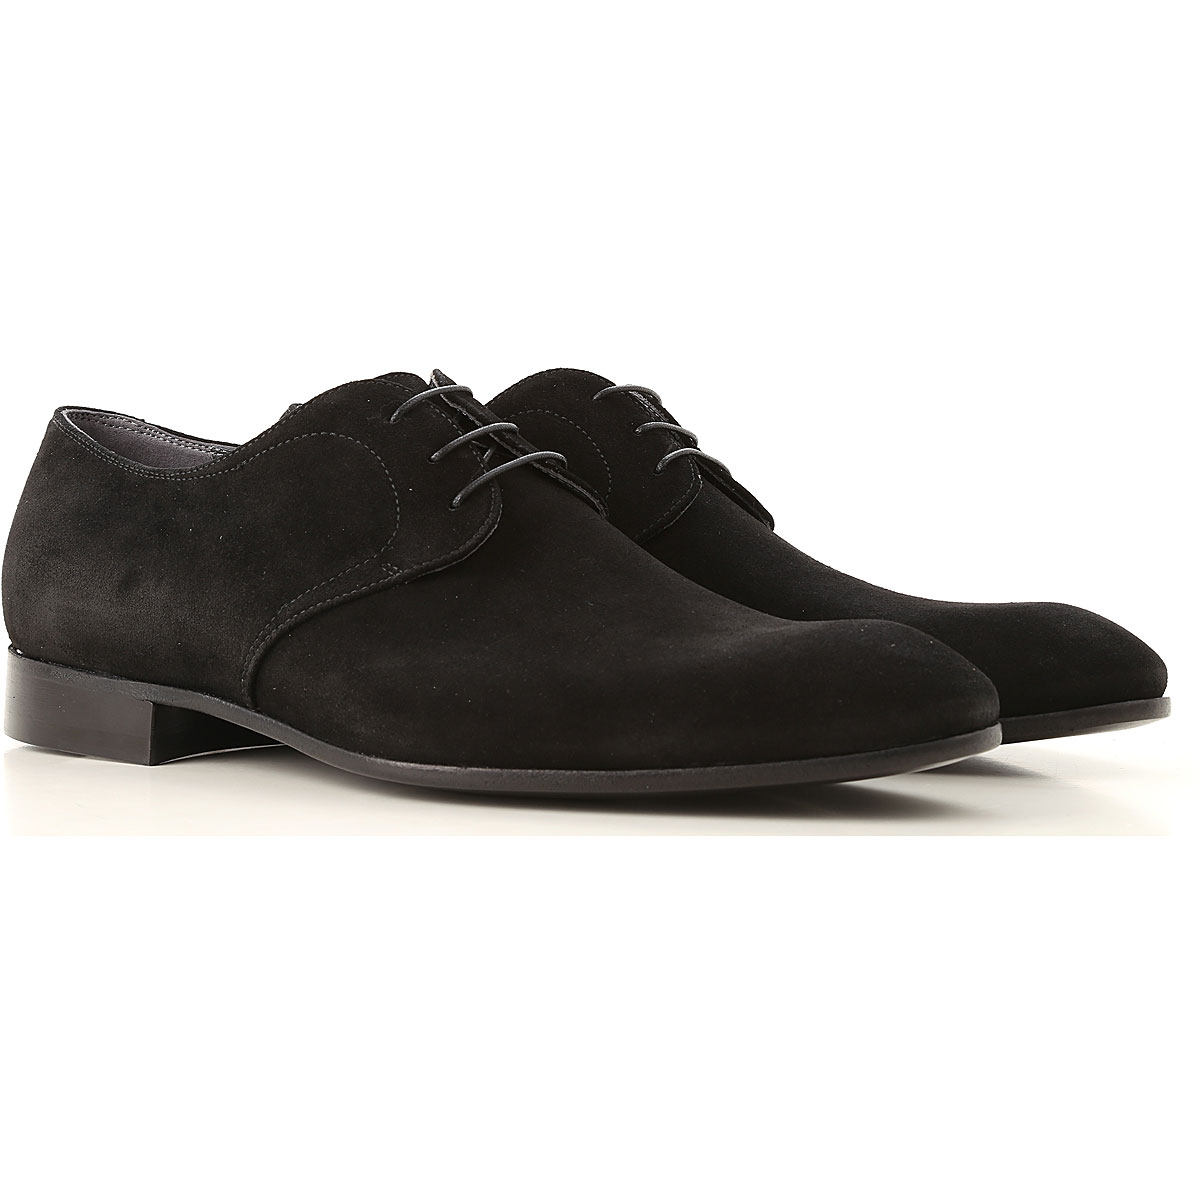 Image of Alberto Guardiani Lace Up Shoes for Men Oxfords, Derbies and Brogues, Black, Suede leather, 2017, 10 10.5 8 9